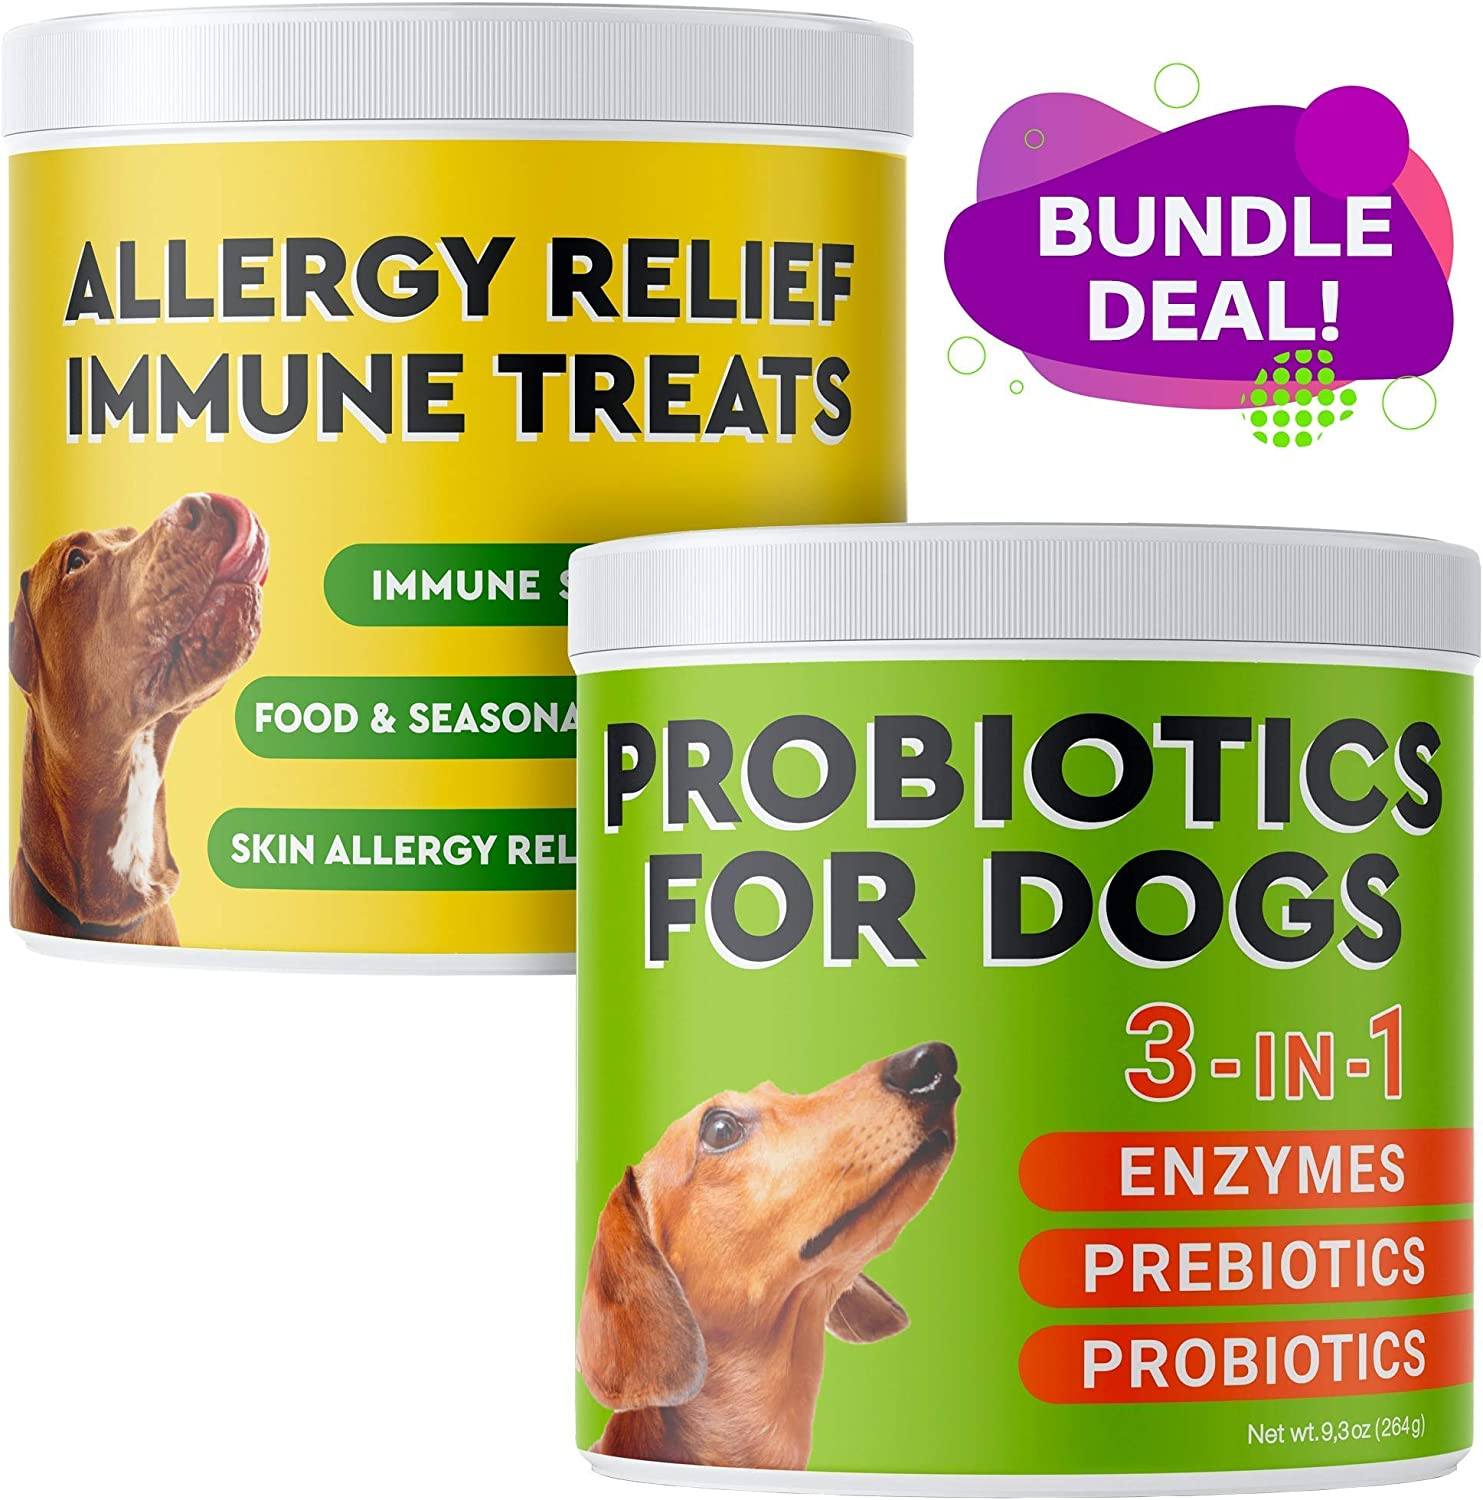 Pawfectchow Allergy Relief + Probiotics for Dogs Combo - Immunity Supplement with Omega 3 Salmon Fish Oil, Colostrum for Anti Itch & Skin Hot Spots + Dog Probiotics Chews and Digestive Enzymes